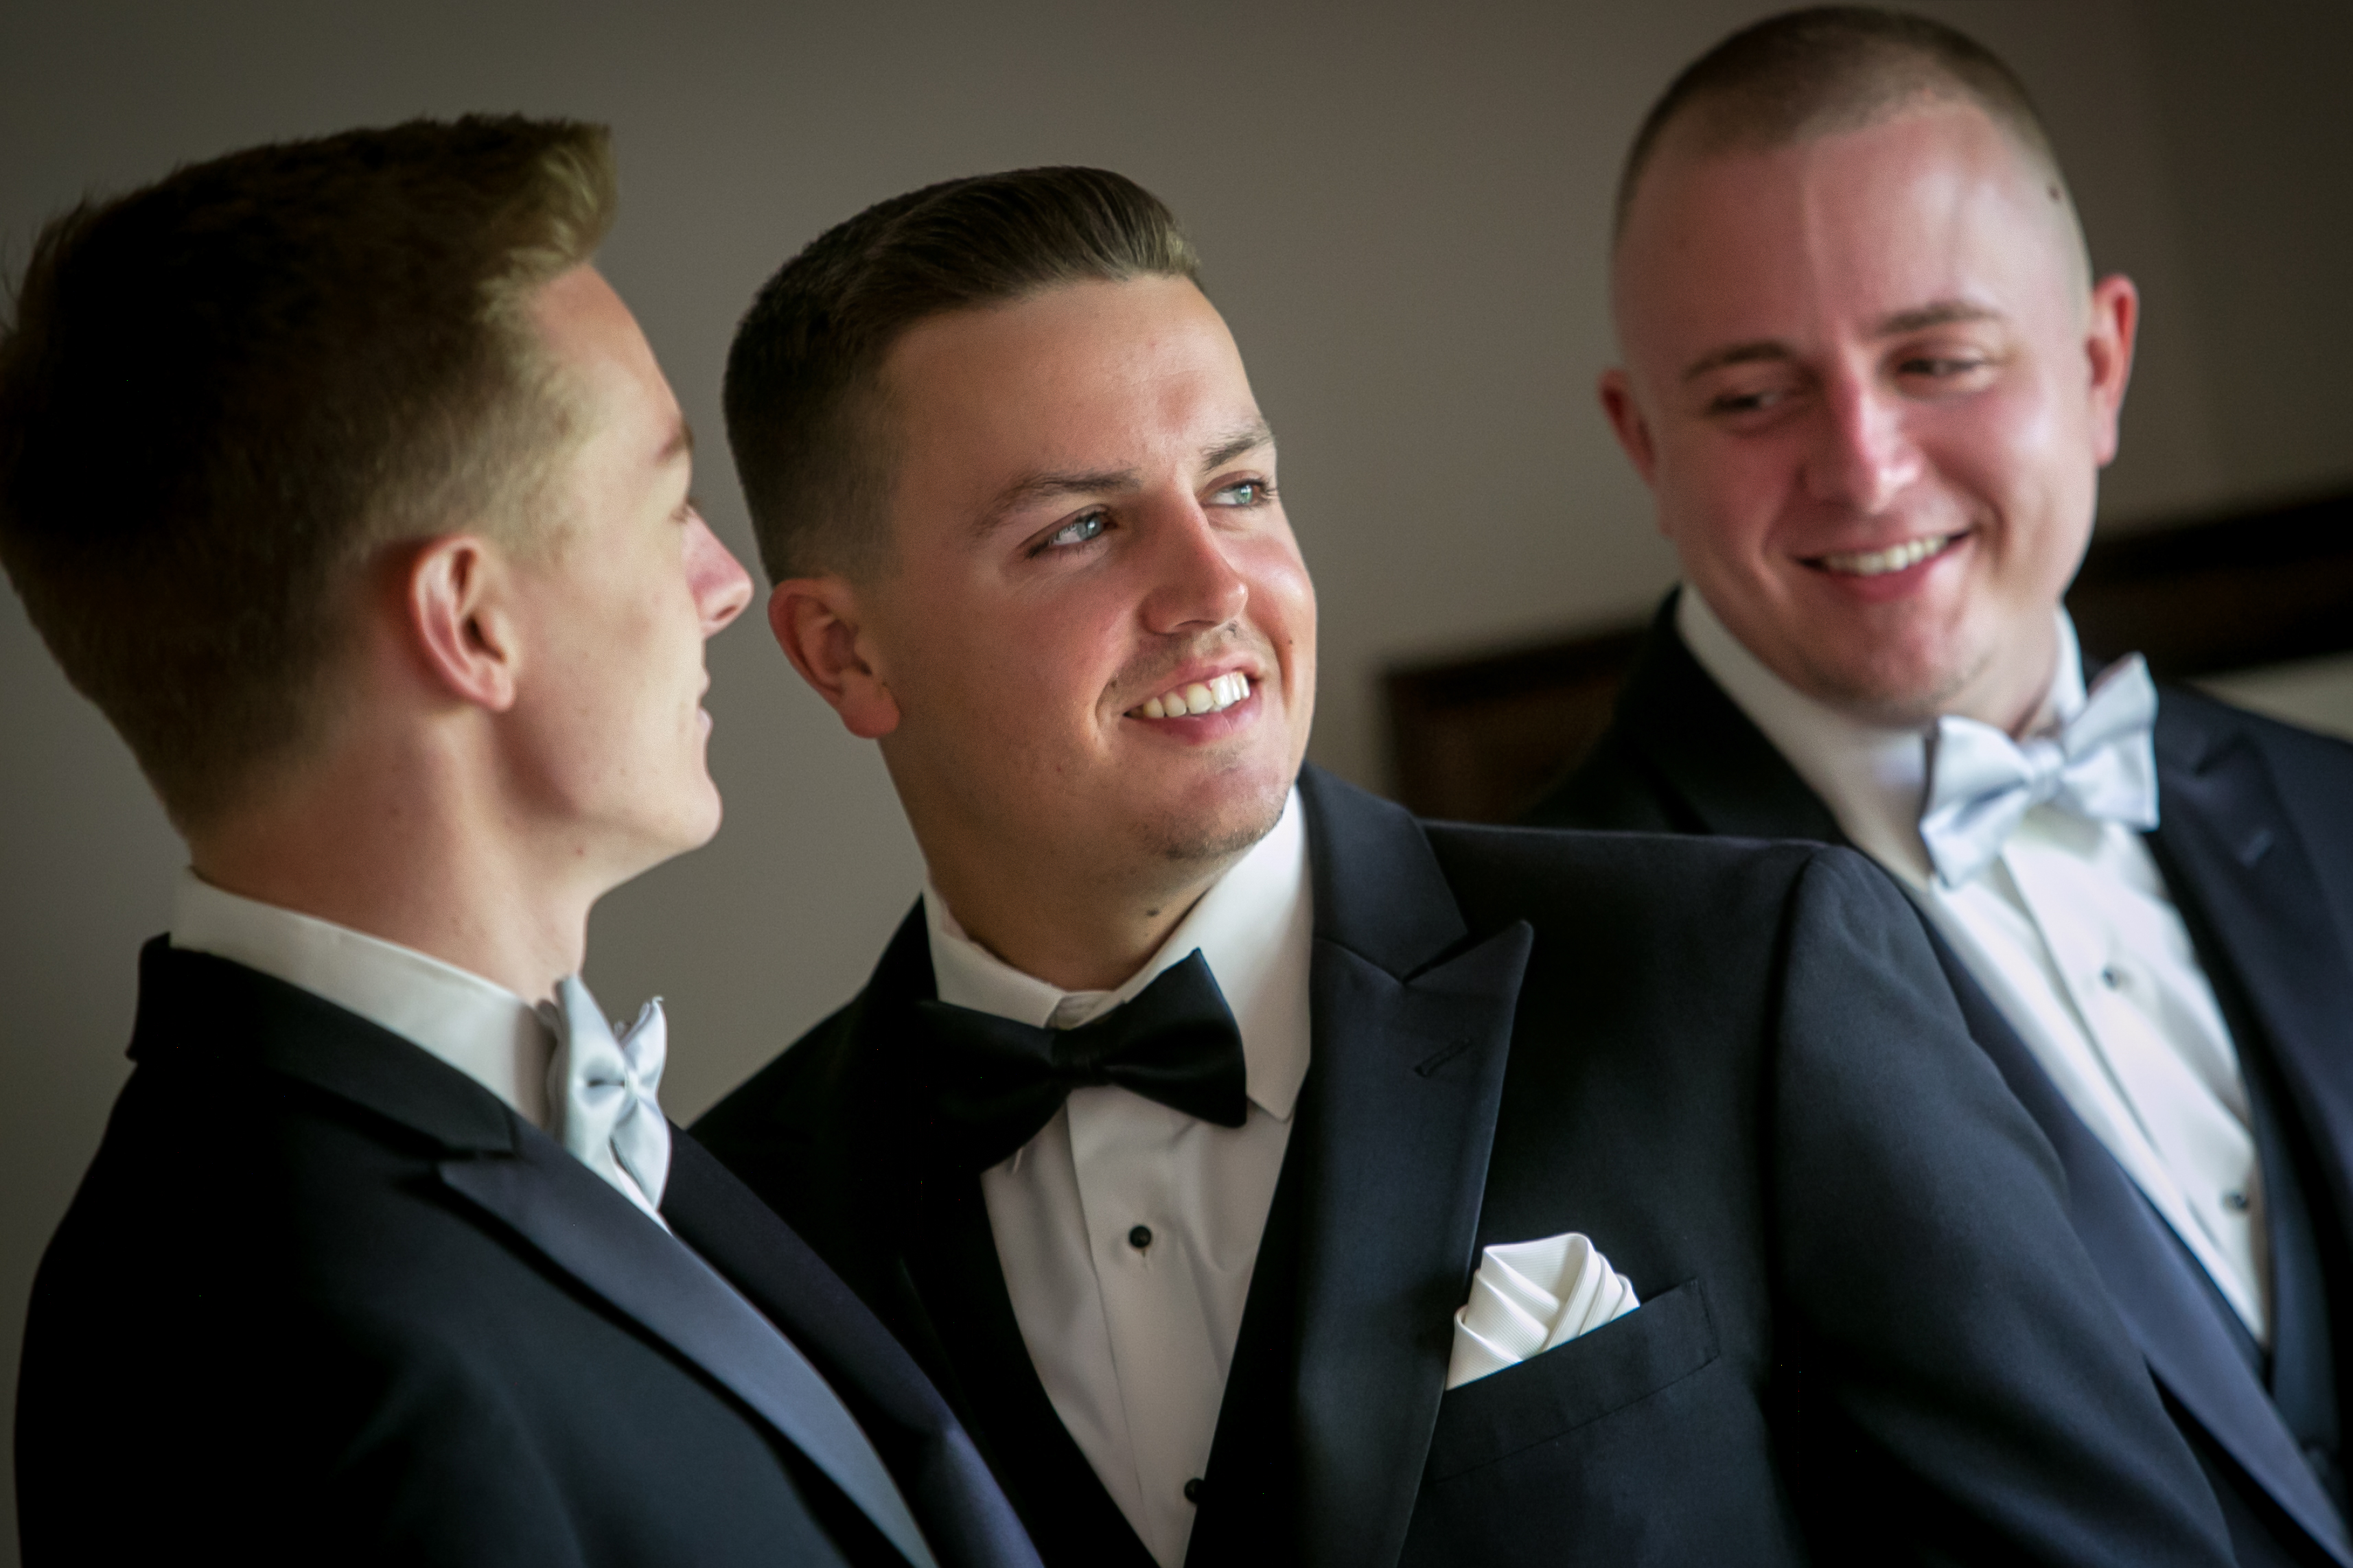 Groom Prep: With his Brothers